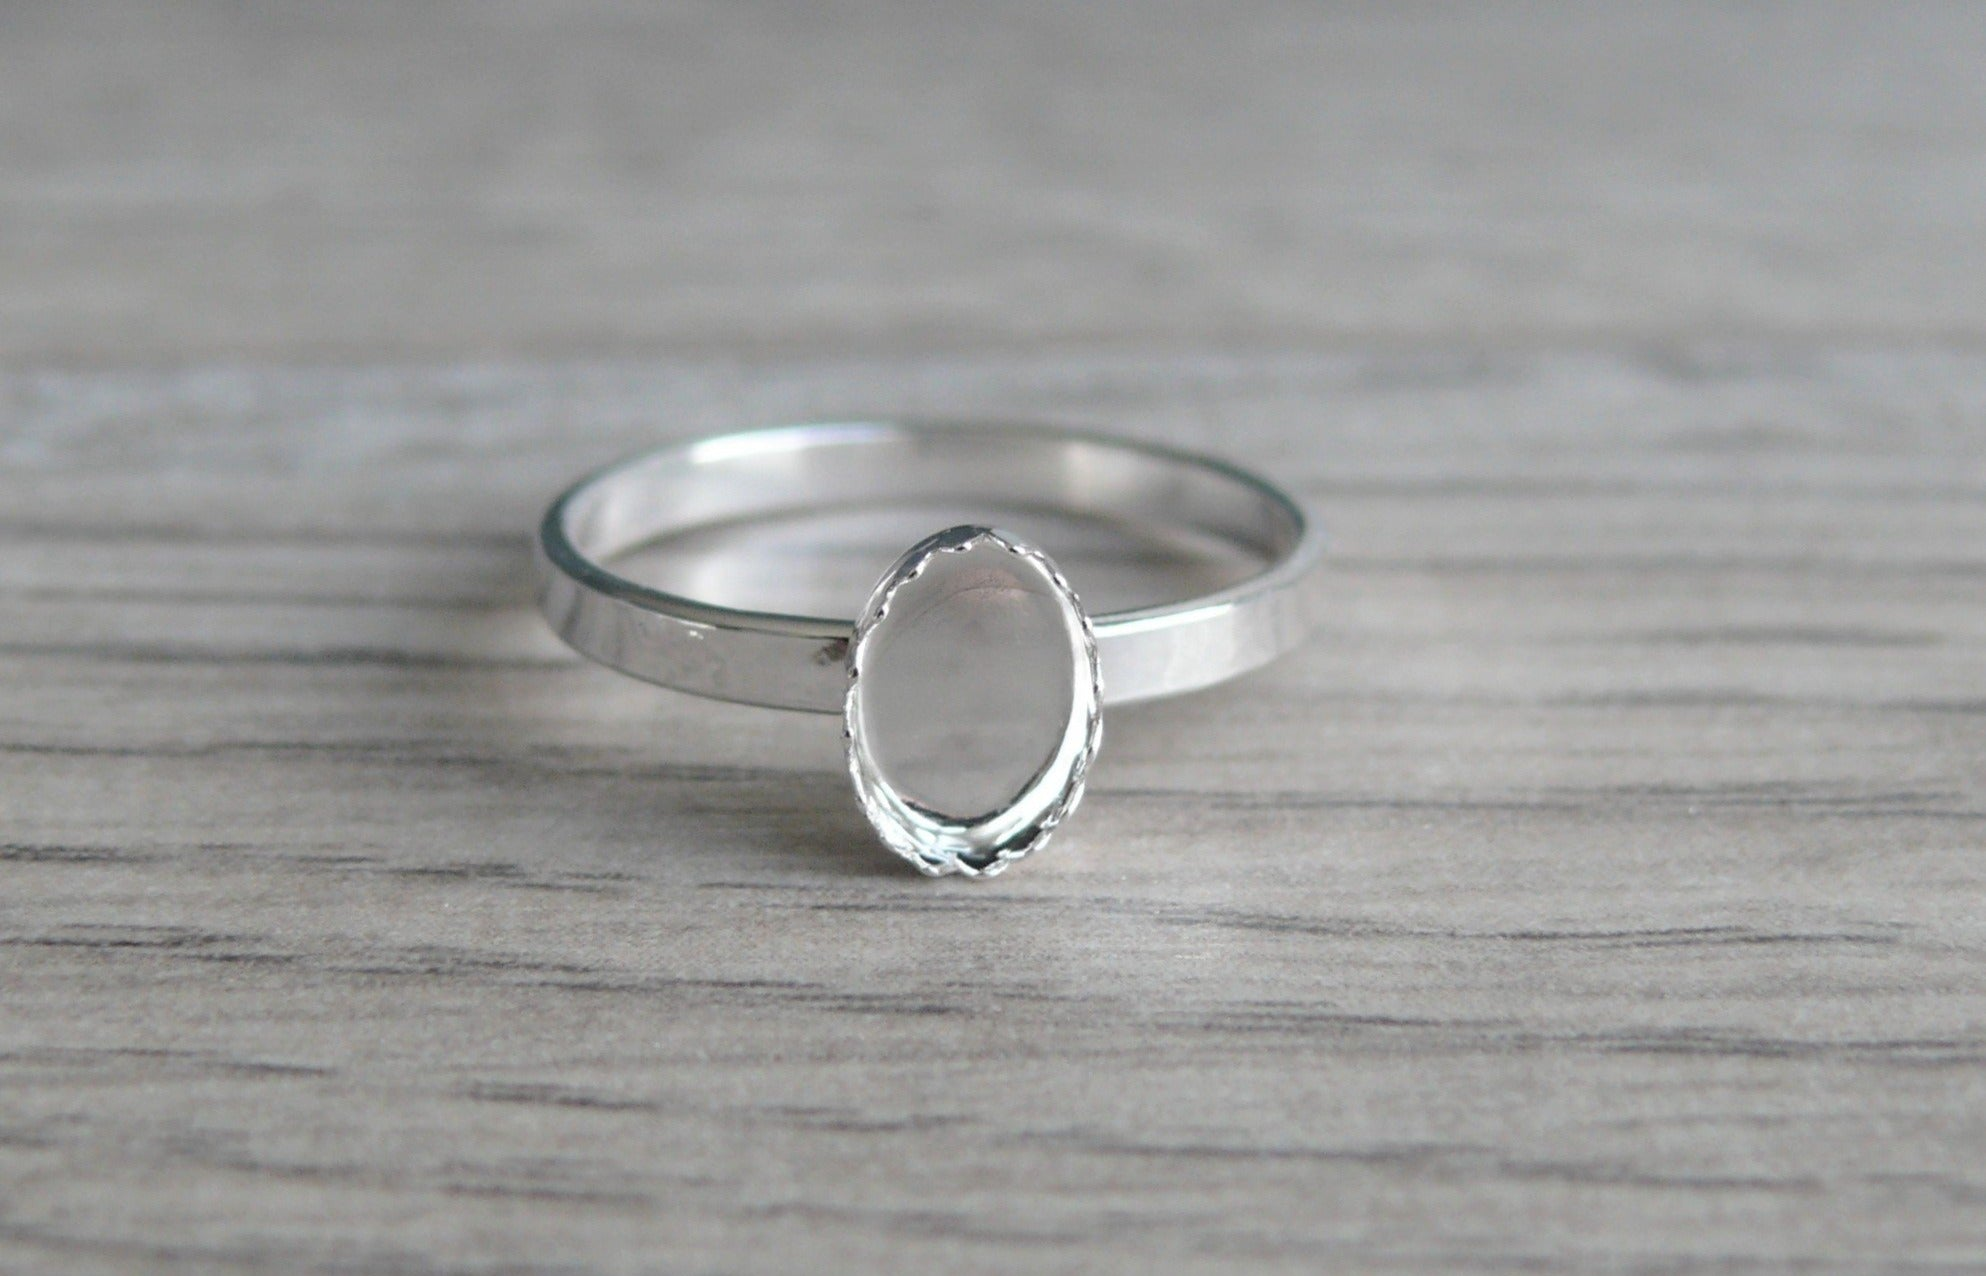 Oval Mount Ring-6X8MM Oval Semi Mount Ring-Without Stone Ring-Unset Ring-6X8MM Oval Setting Ring-925 Sterling Silver Ring-Prong Setting Ring